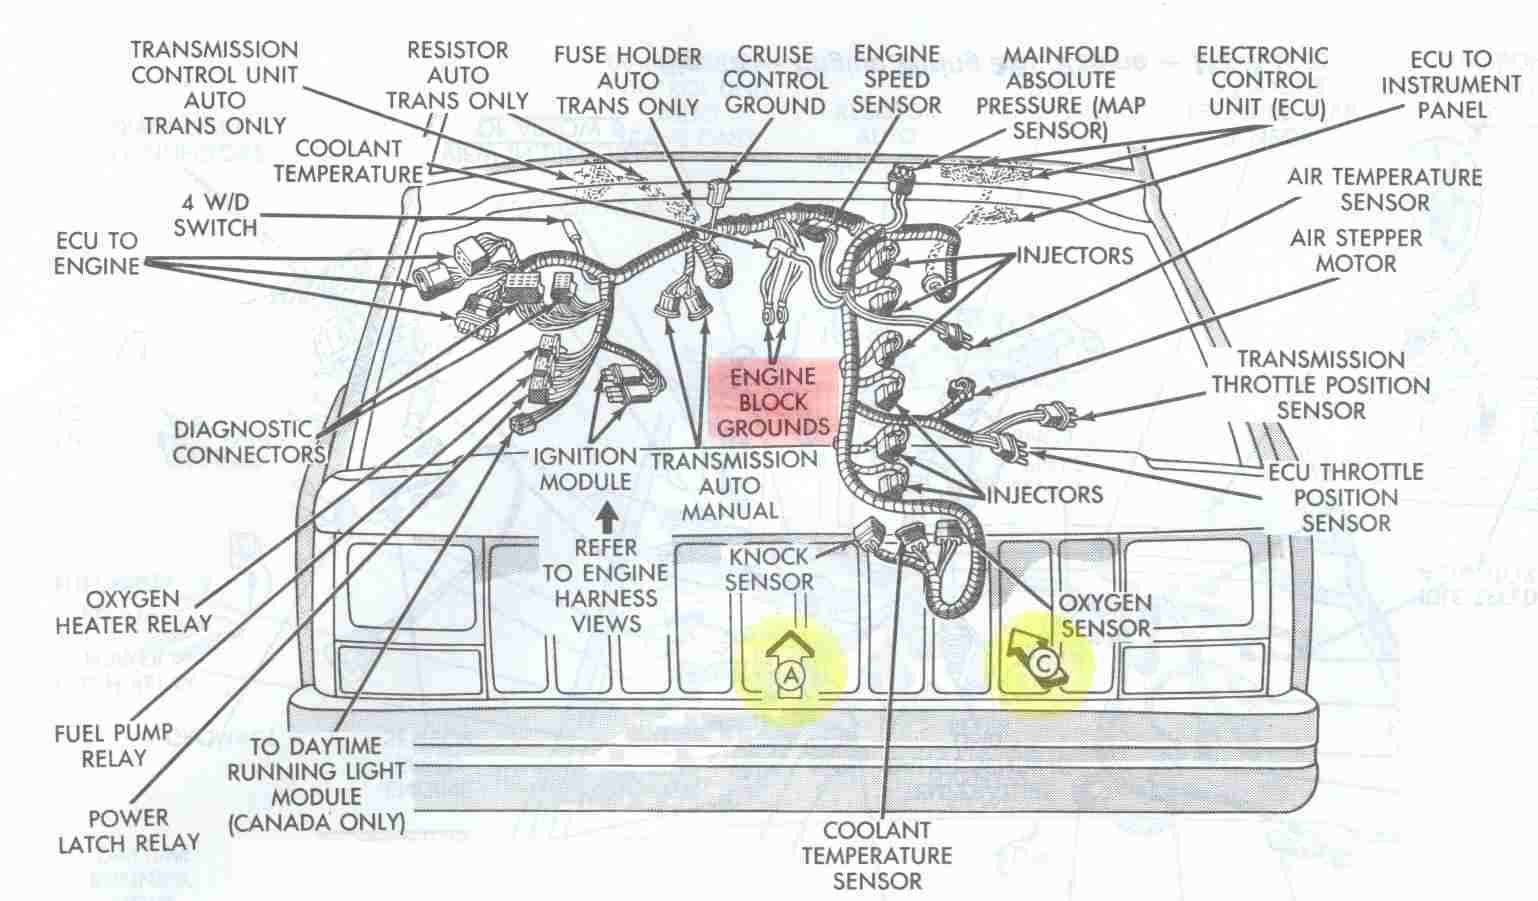 engine bay schematic showing major electrical ground points for 4 0l rh pinterest com HVAC Wiring Diagrams Wiring Diagram Symbols